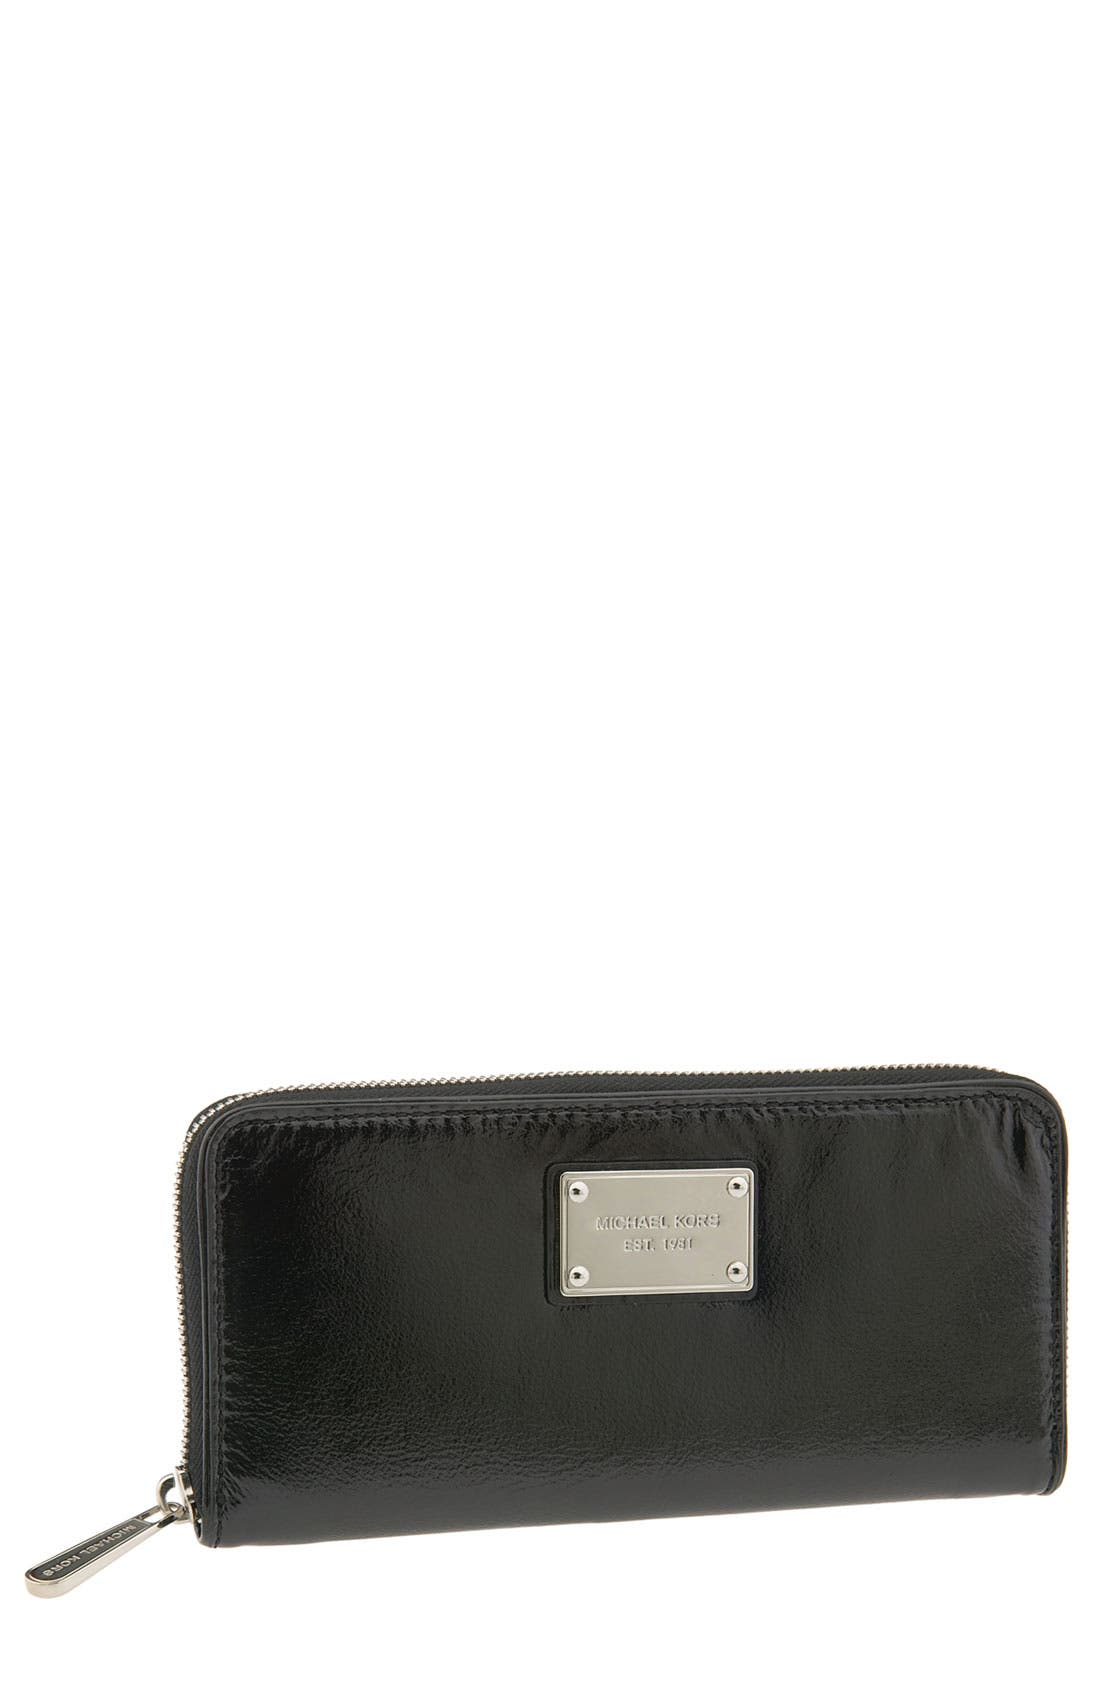 MICHAEL MICHAEL KORS 'Jet Set' Zip Around Continental Wallet, Main, color, 001